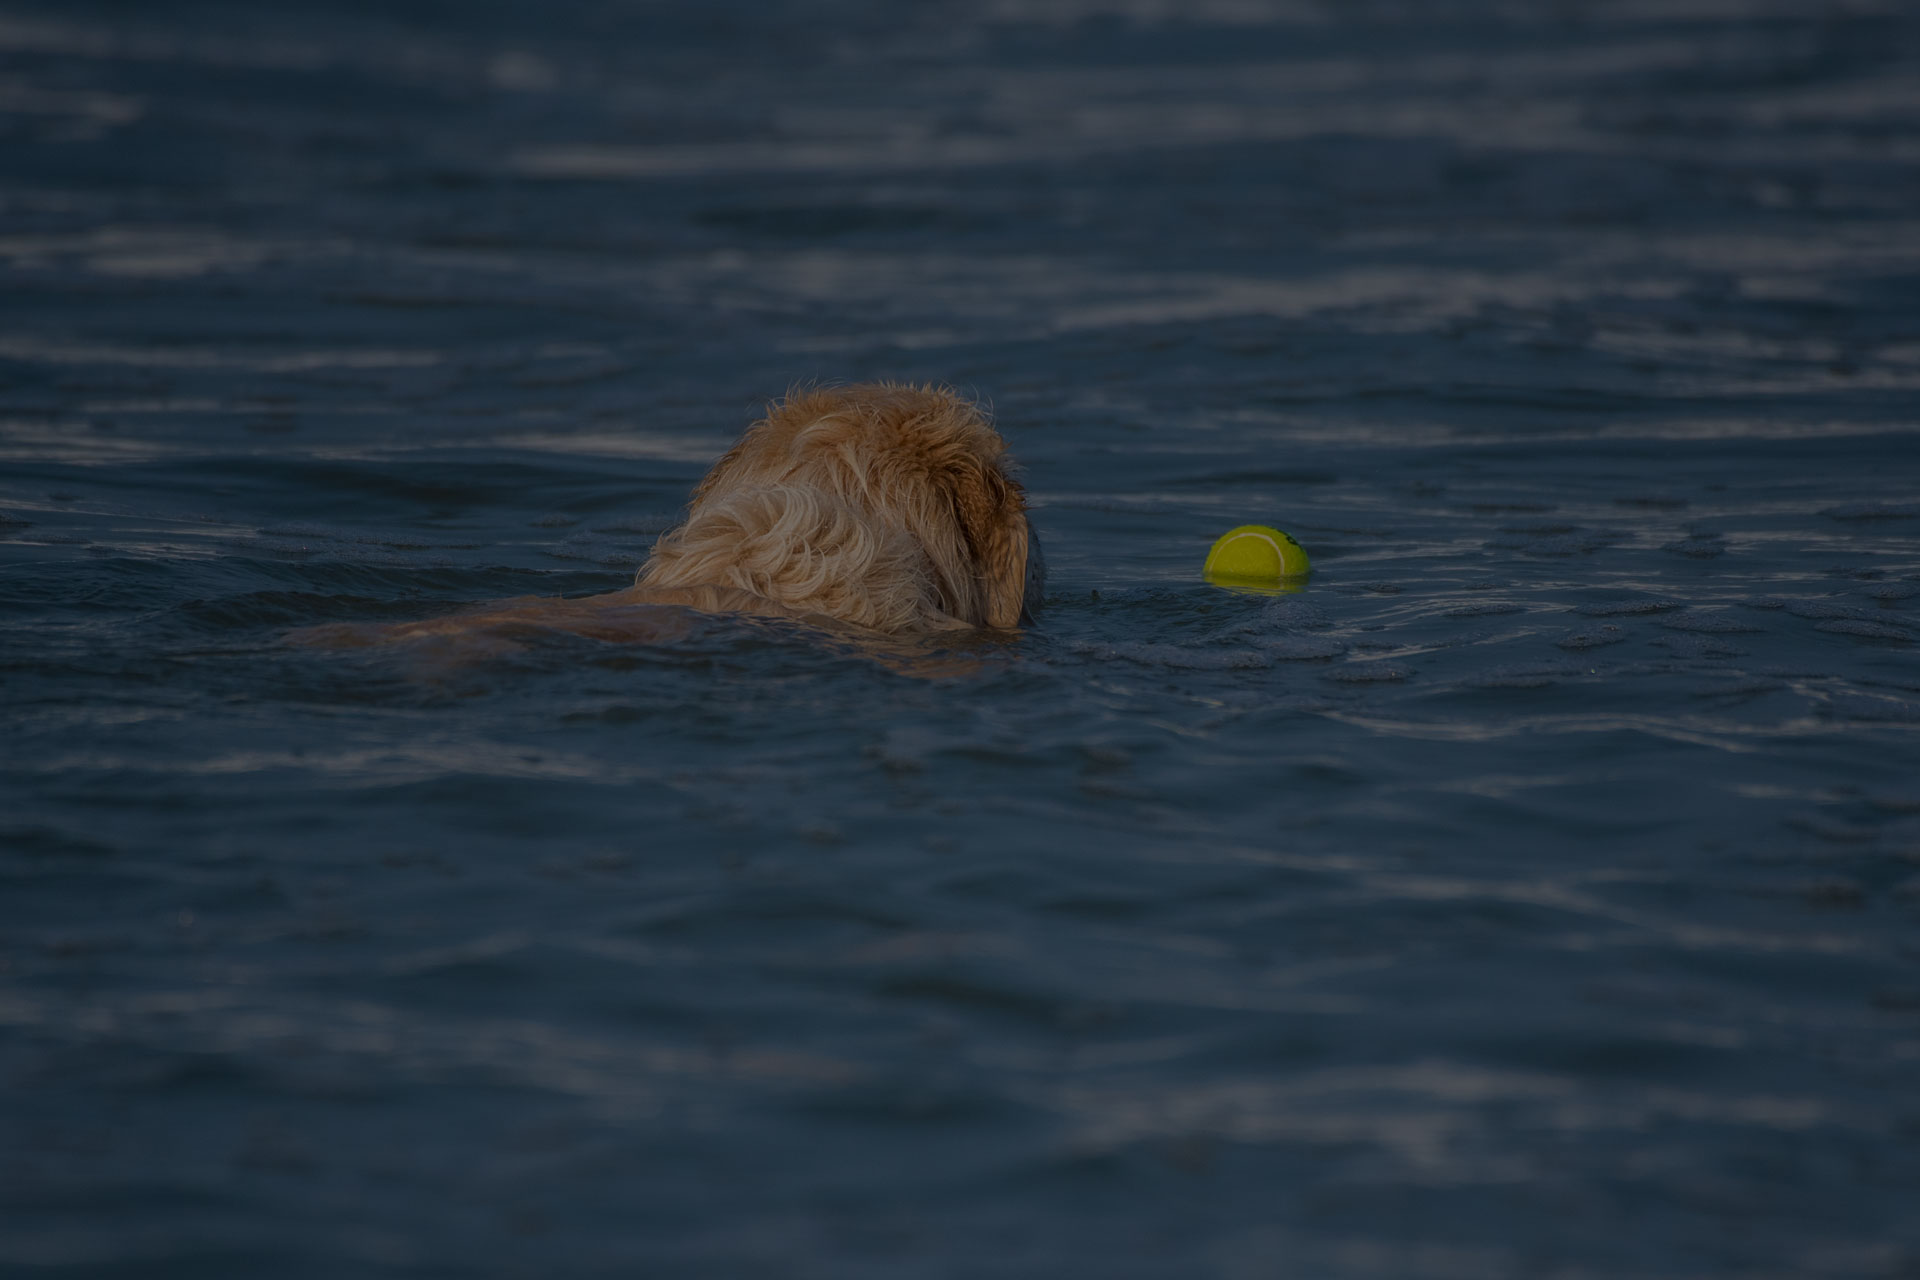 Dog swimming in water to catch the ball